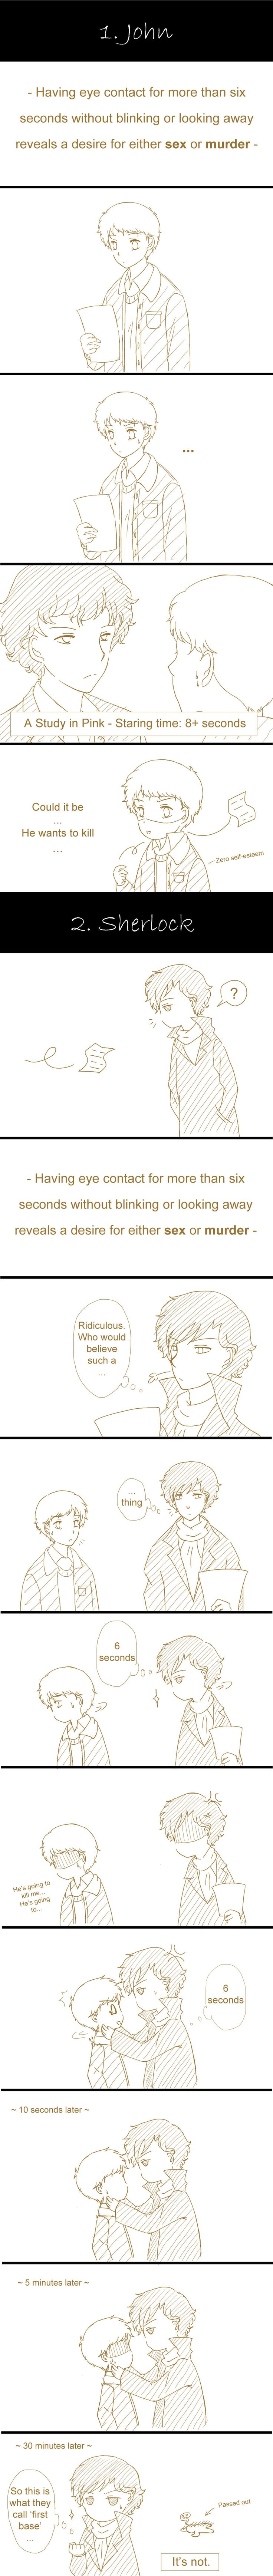 """Eye contact"""""""" even if you don't like johnlock its too cute♥"""